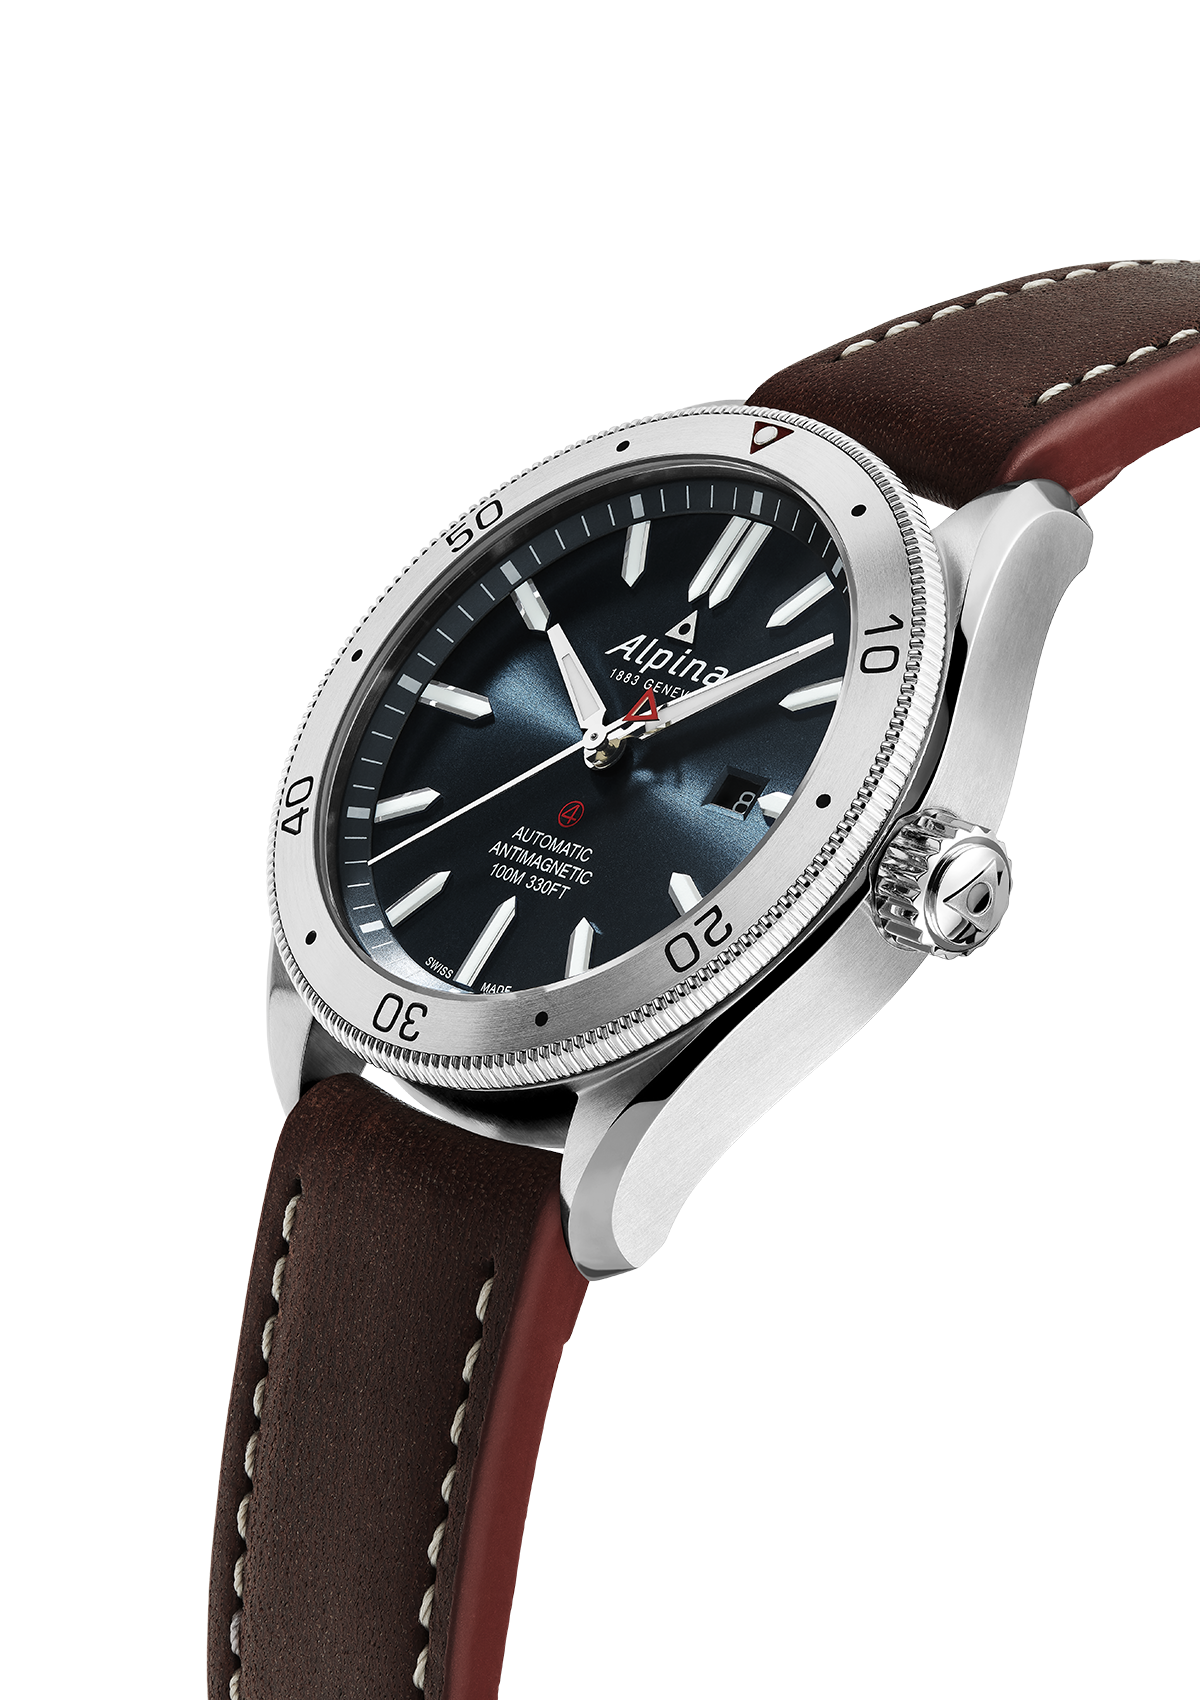 Alpina - ALPINER 4 AUTOMATIC - Blue Dial, Brown Leather